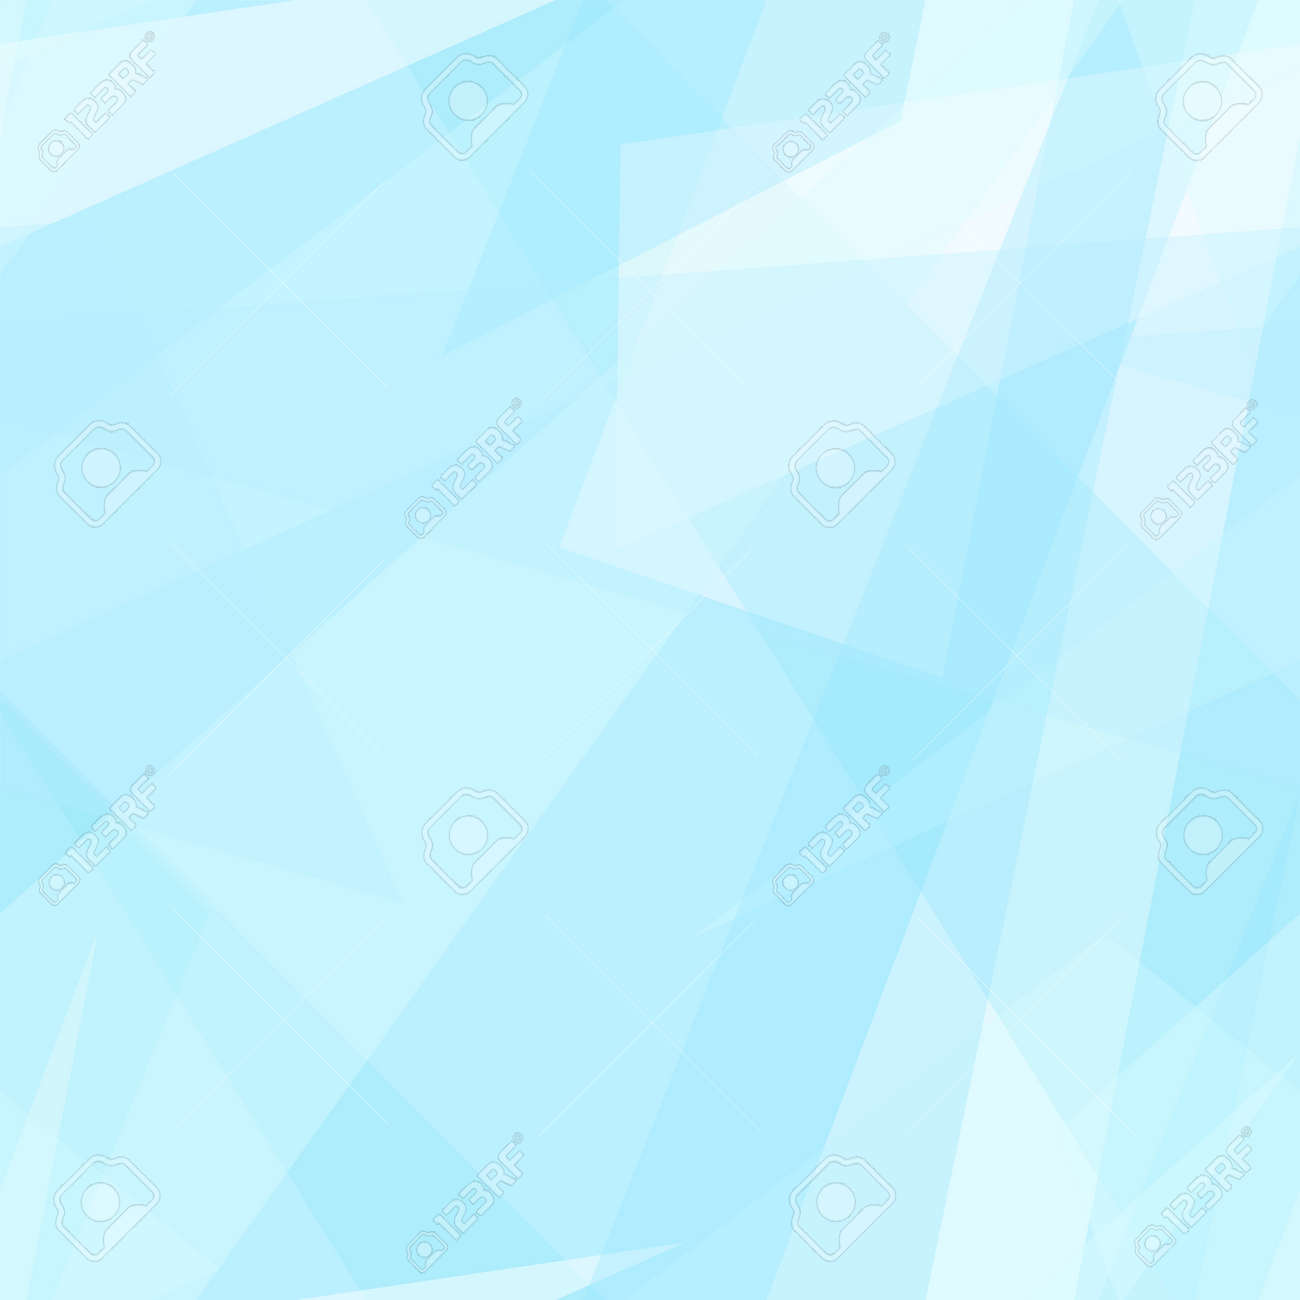 Pastel blue, white transparent triangle shapes. Vector rapport for seamless pattern. Geometric background. Stylized stained glass. Abstract design for wallpaper, wrapping paper, websites. EPS10 illustration - 156255458